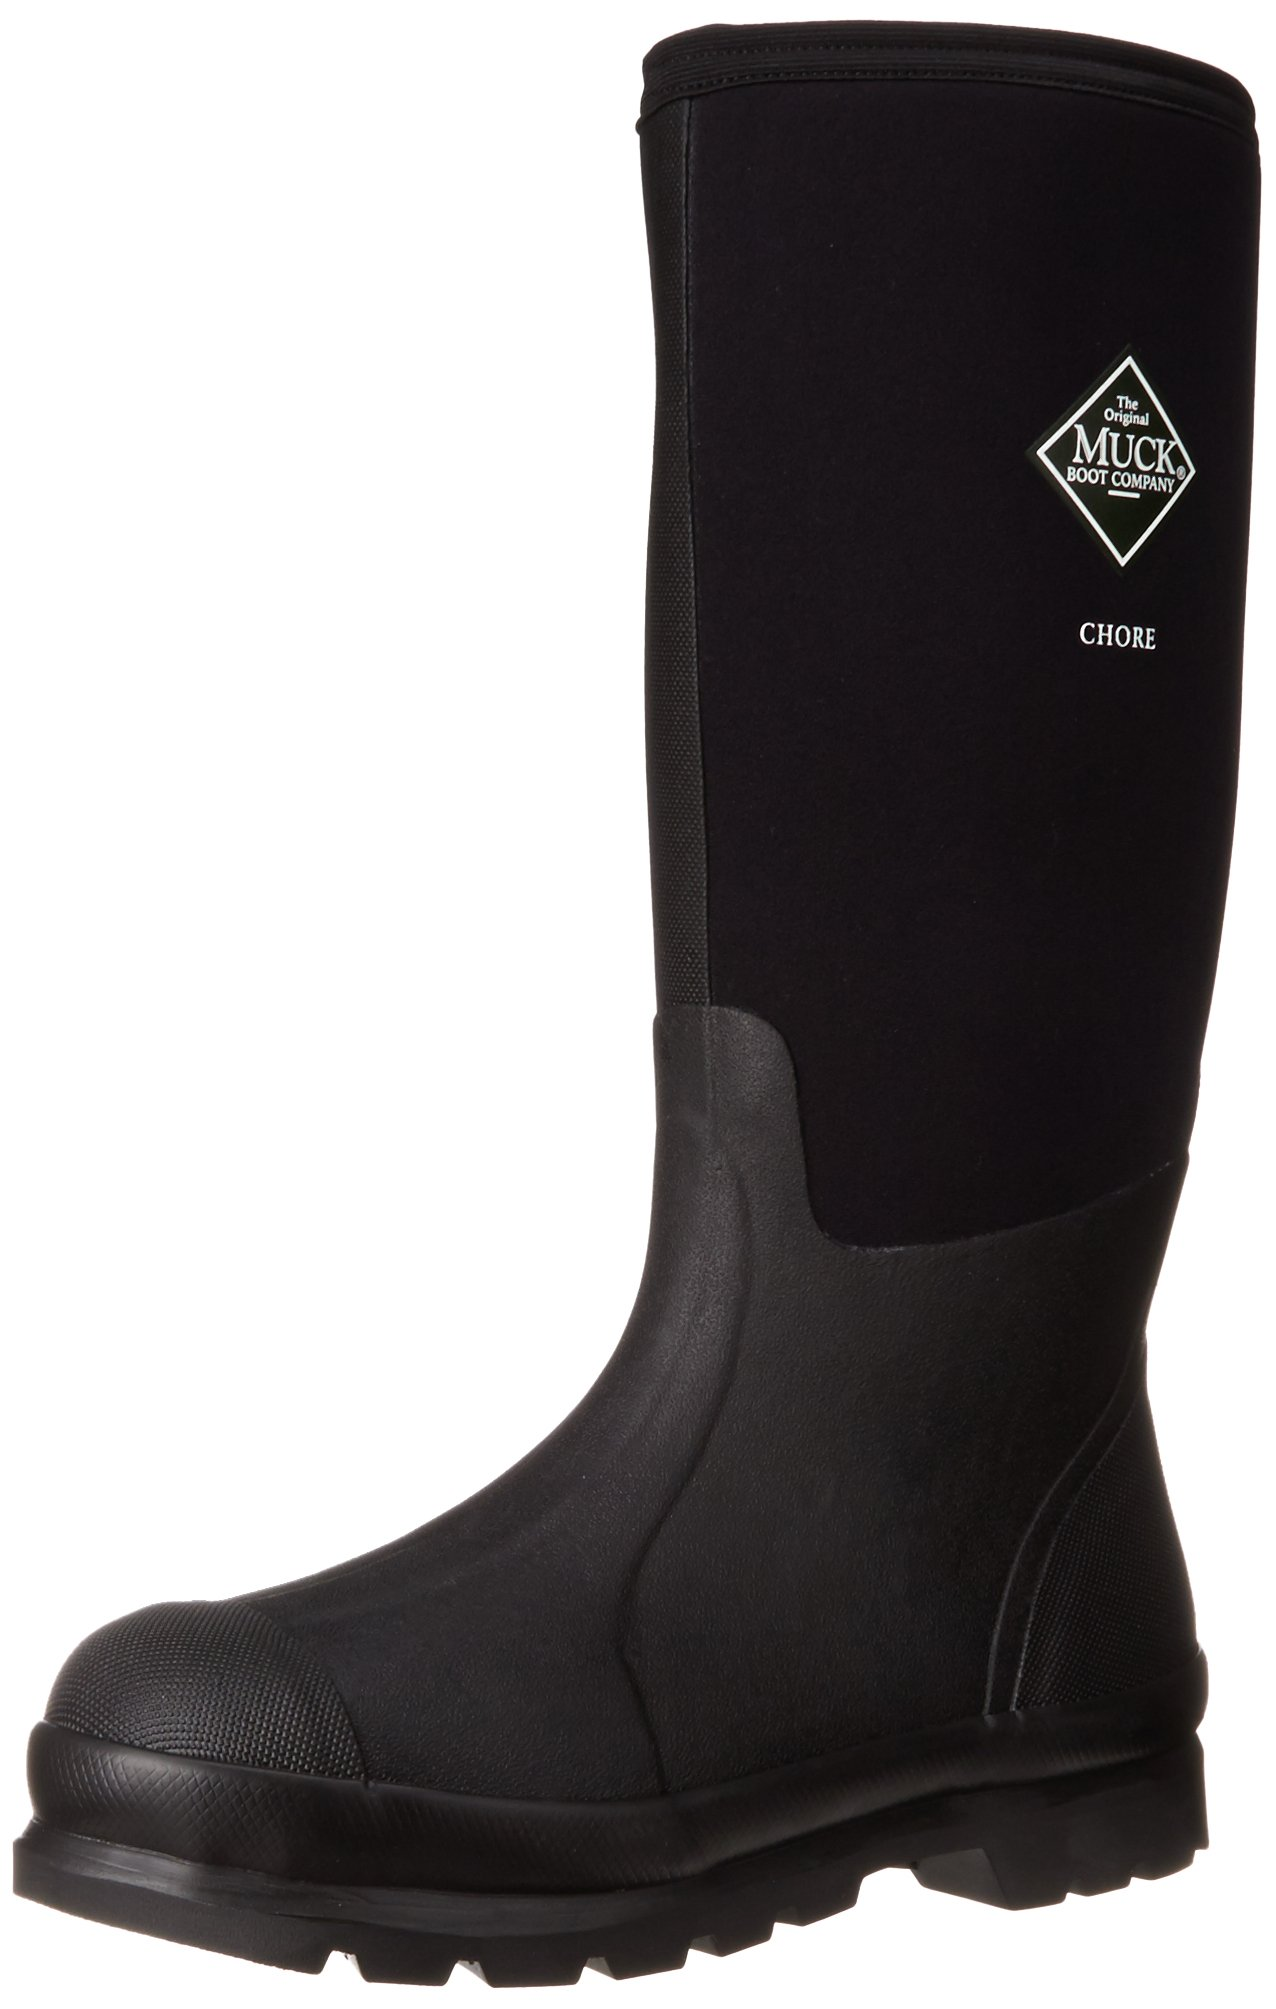 The Original MuckBoots Adult Chore Hi-Cut Boot,Black,Men's 8 M US / Women's 9 M US by Muck Boot